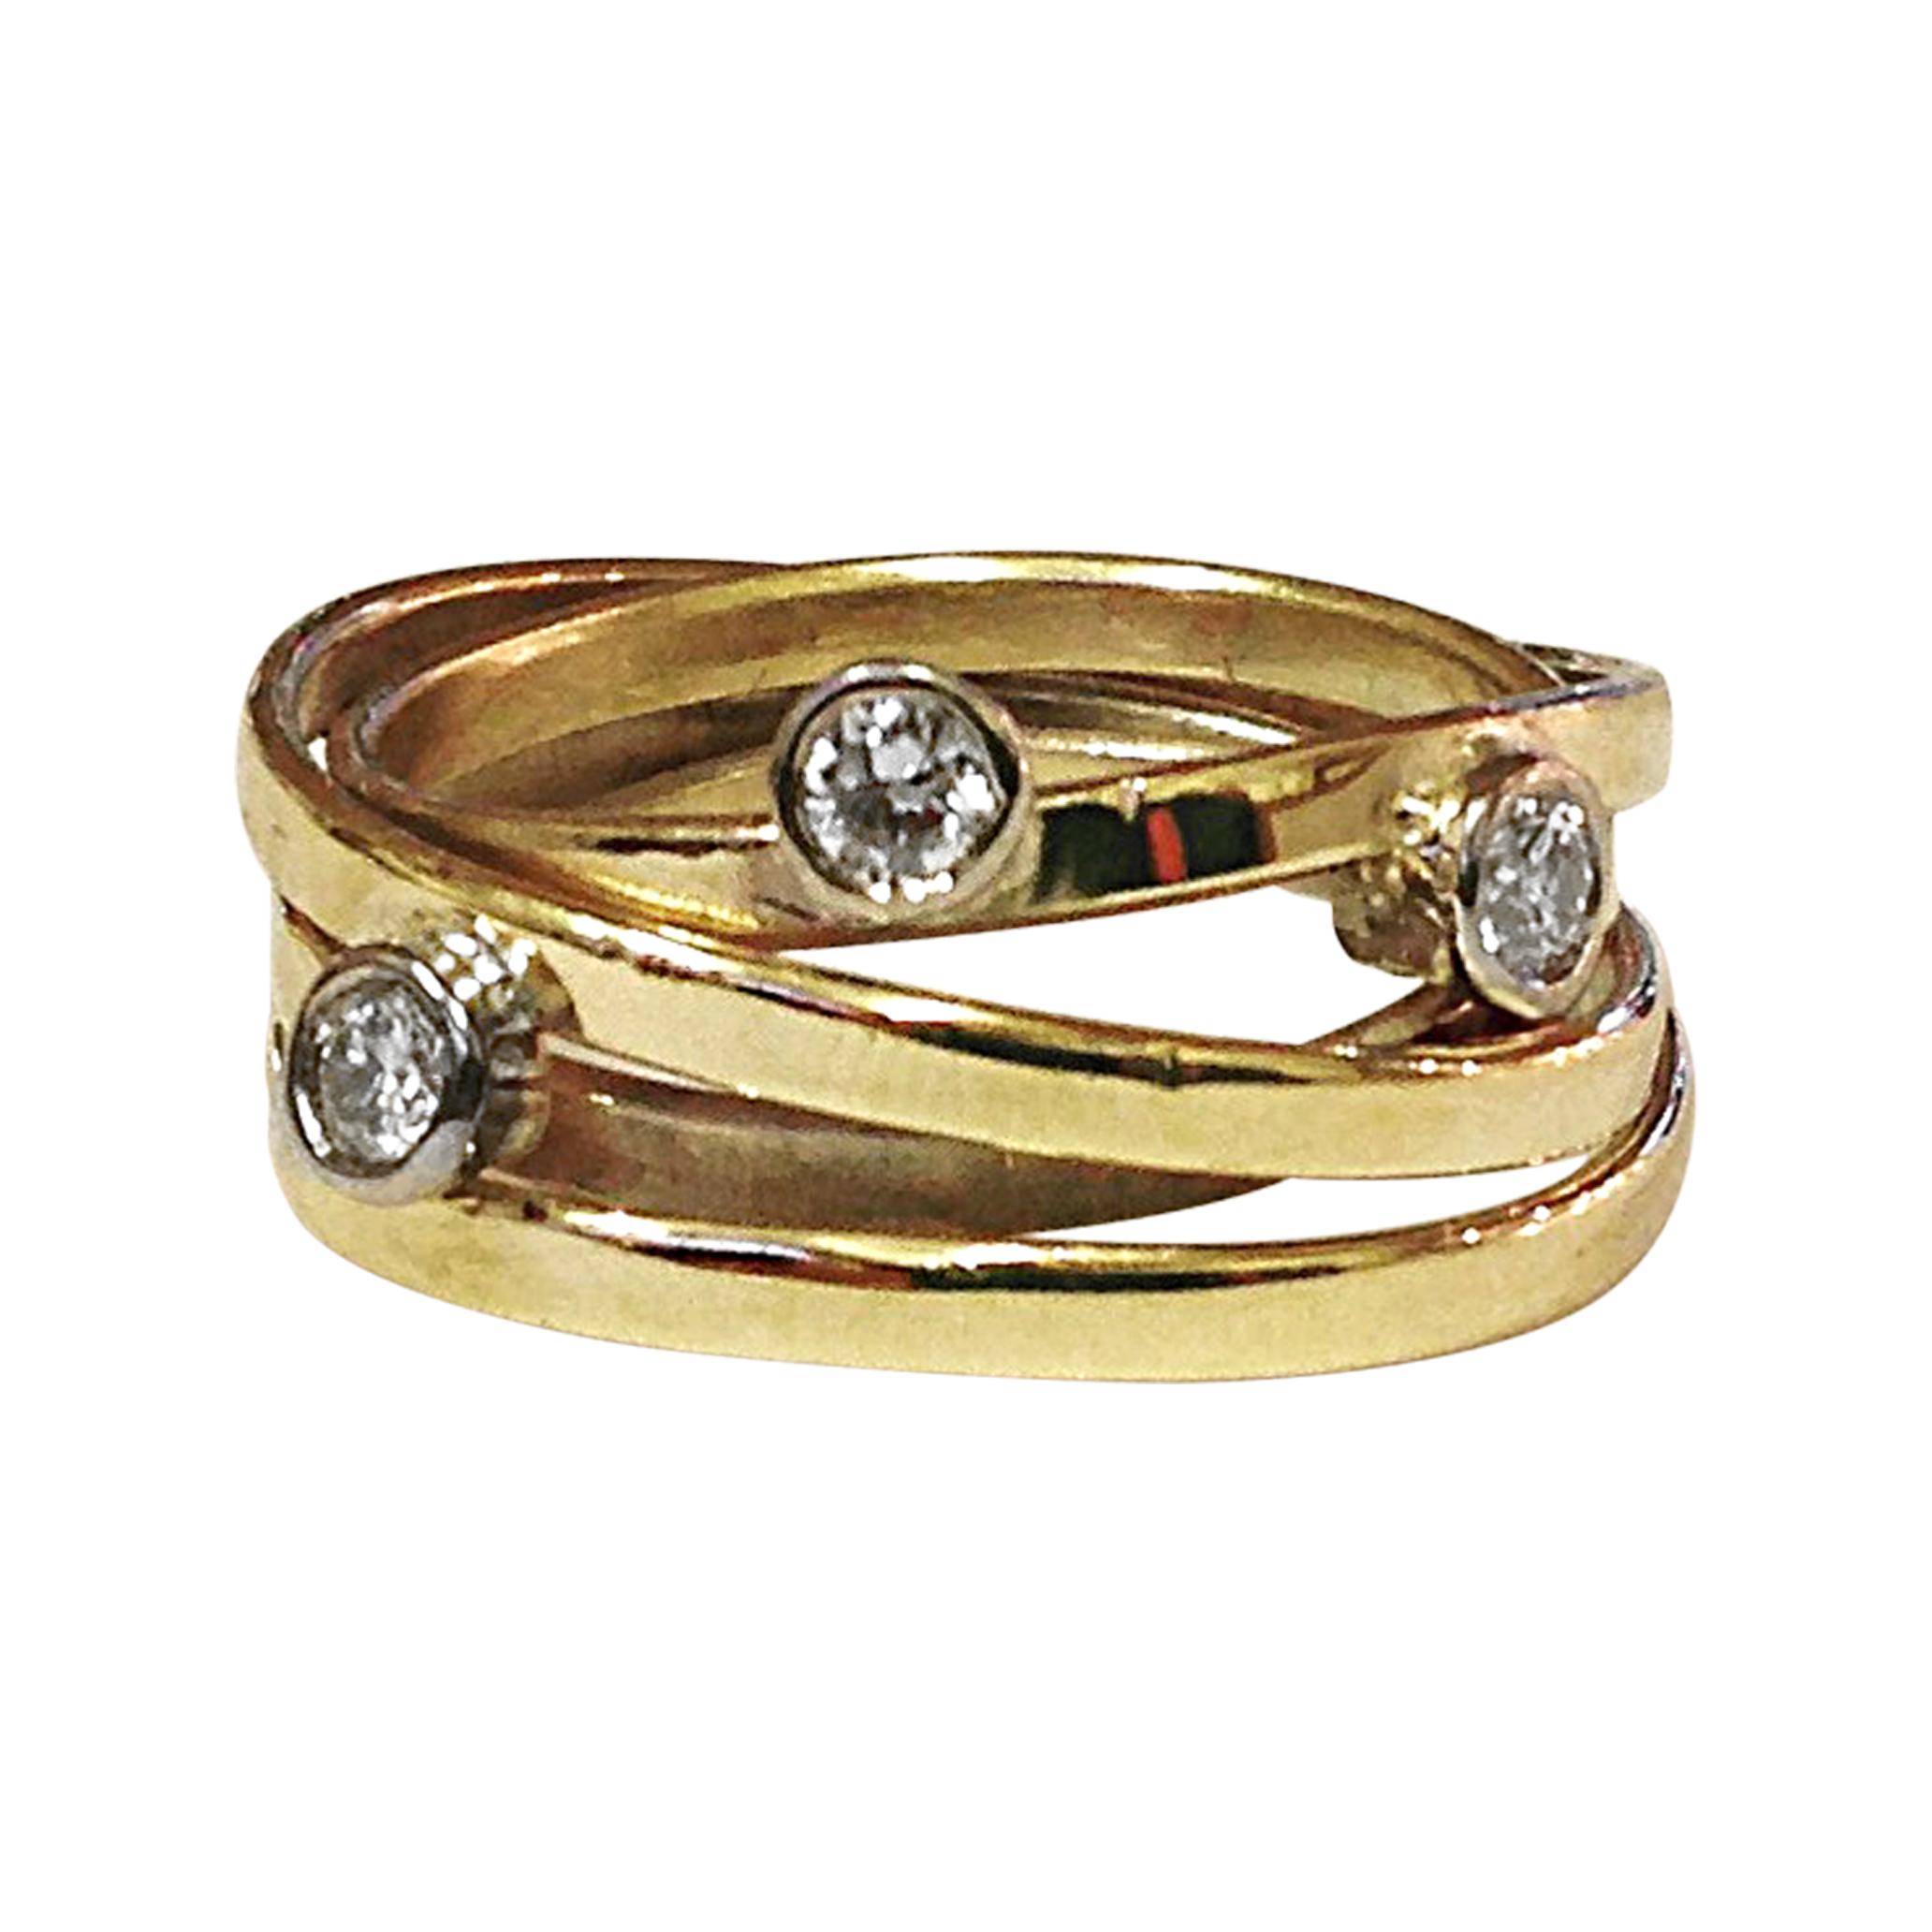 gold Wrap Ring with Diamonds.